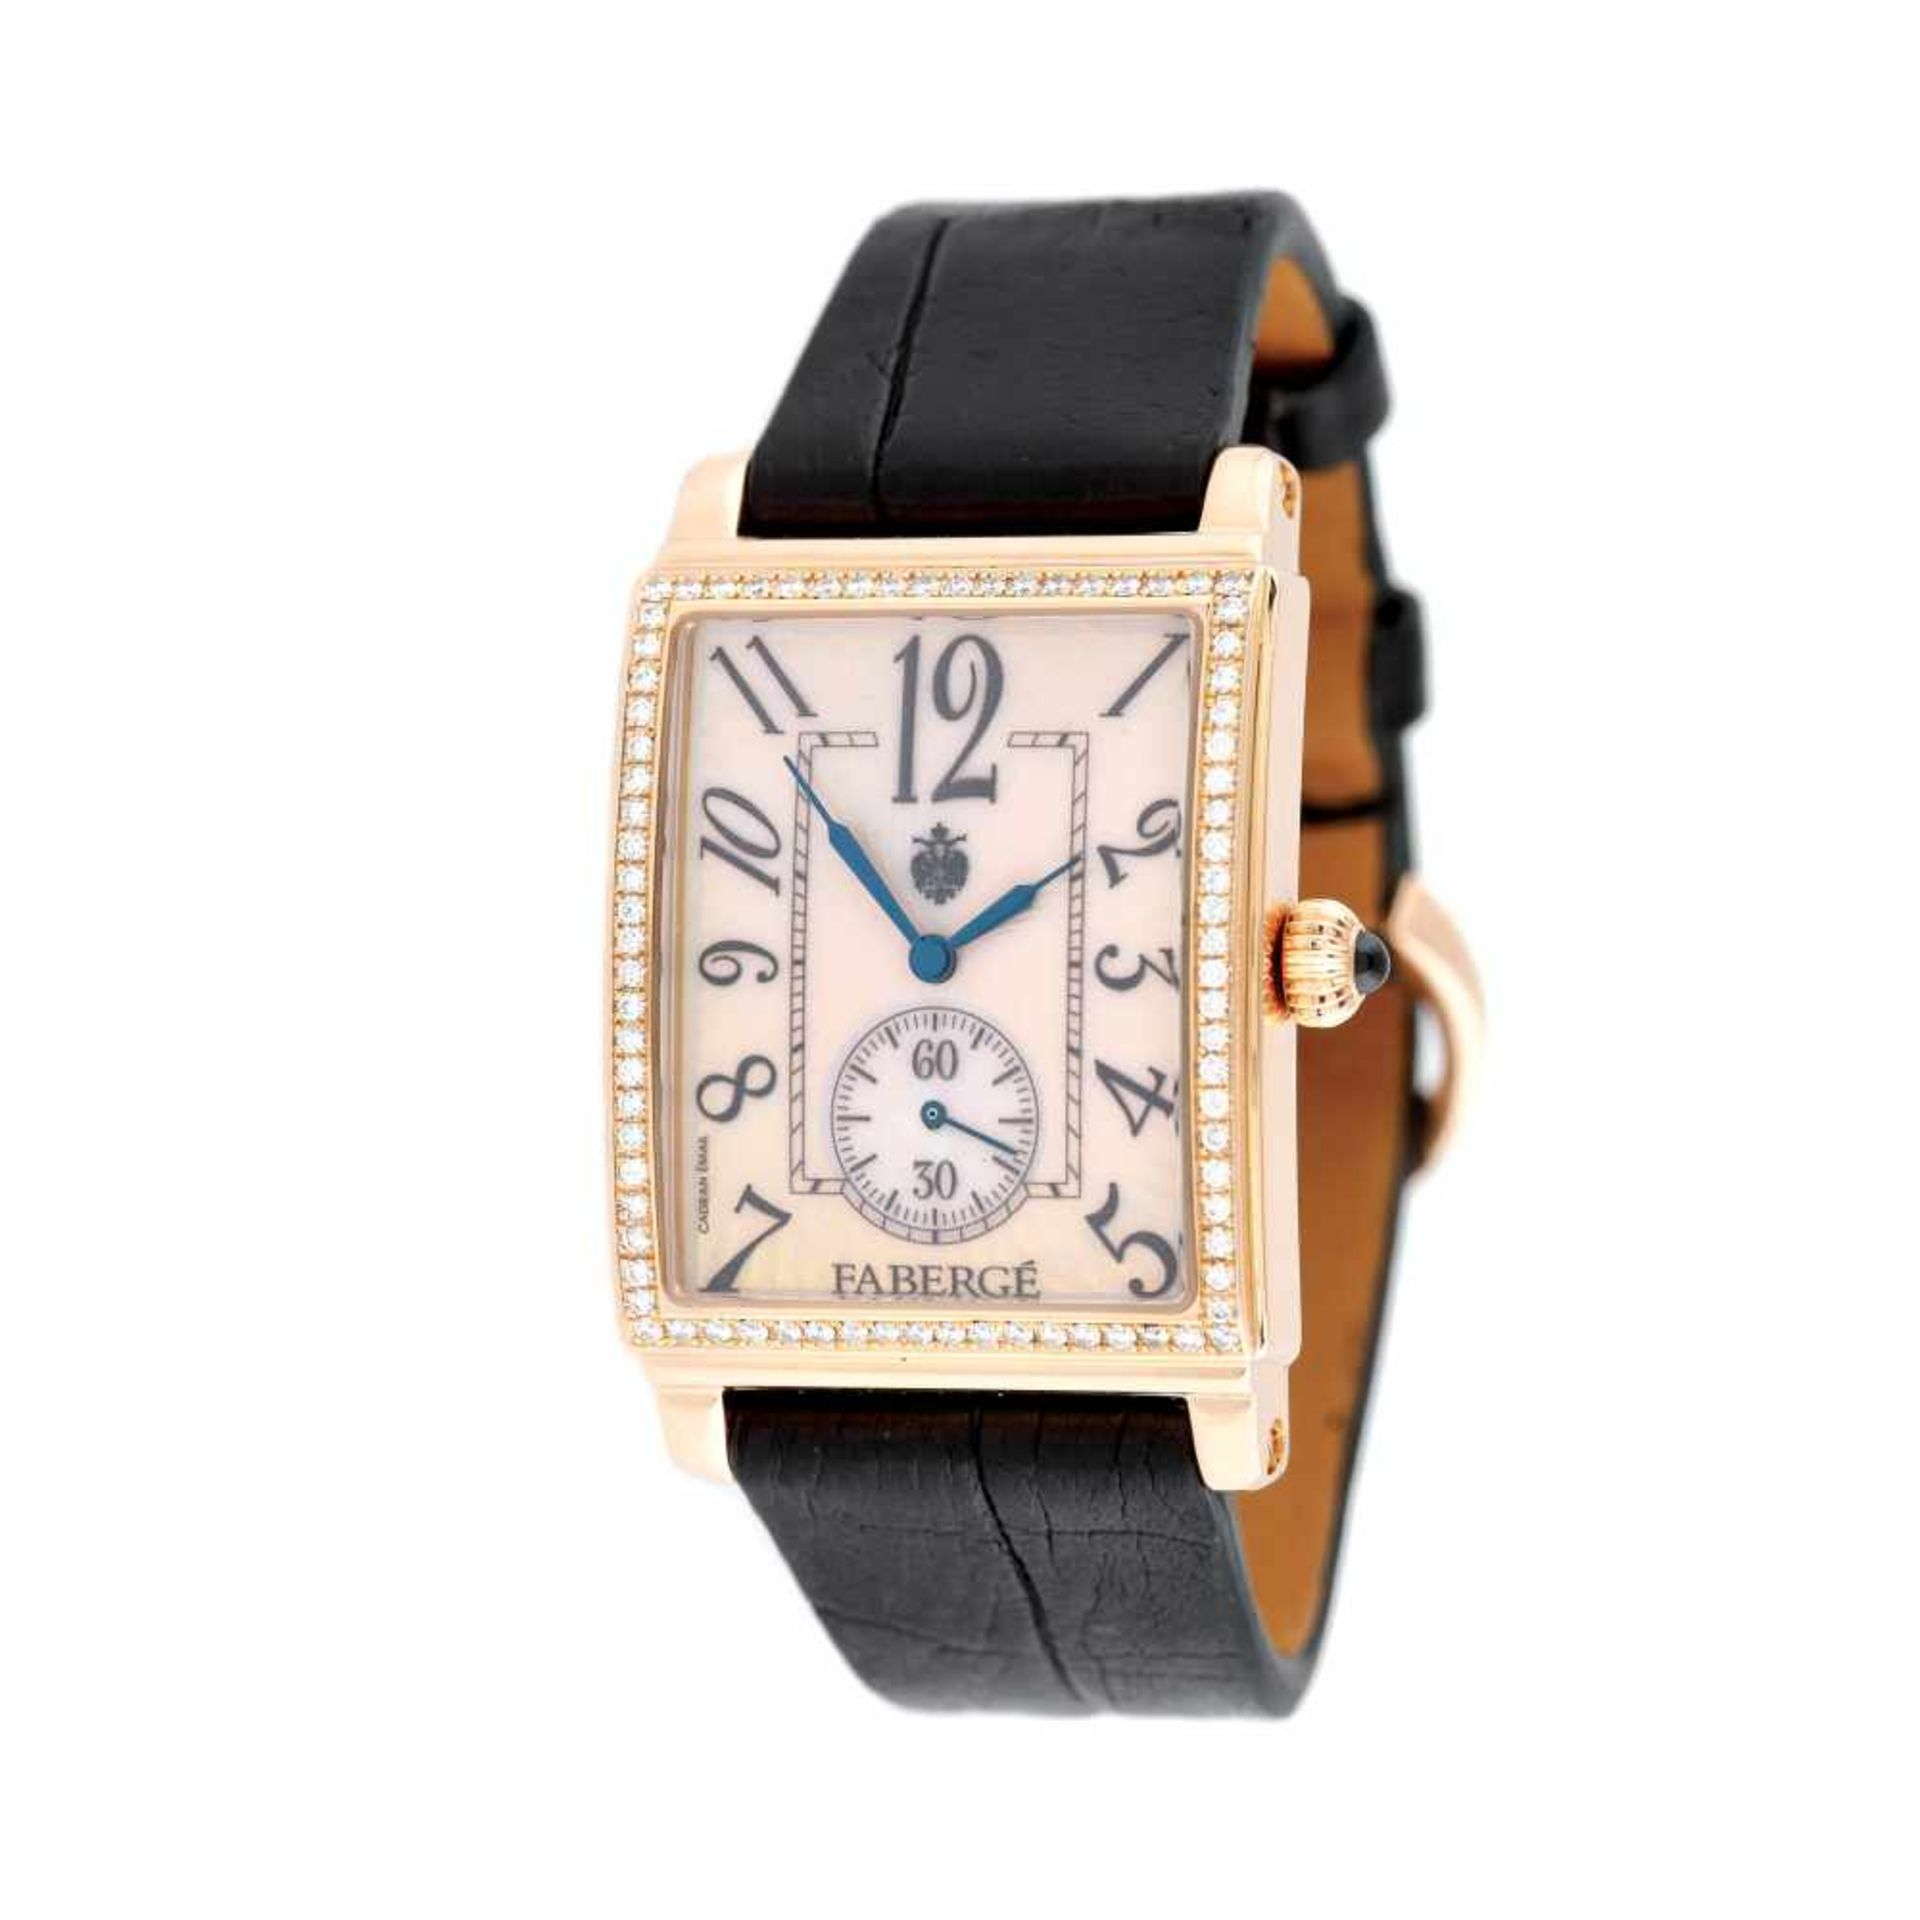 Fabergé Nr: 6 wristwatch, rose gold, diamond-paved bezel, women